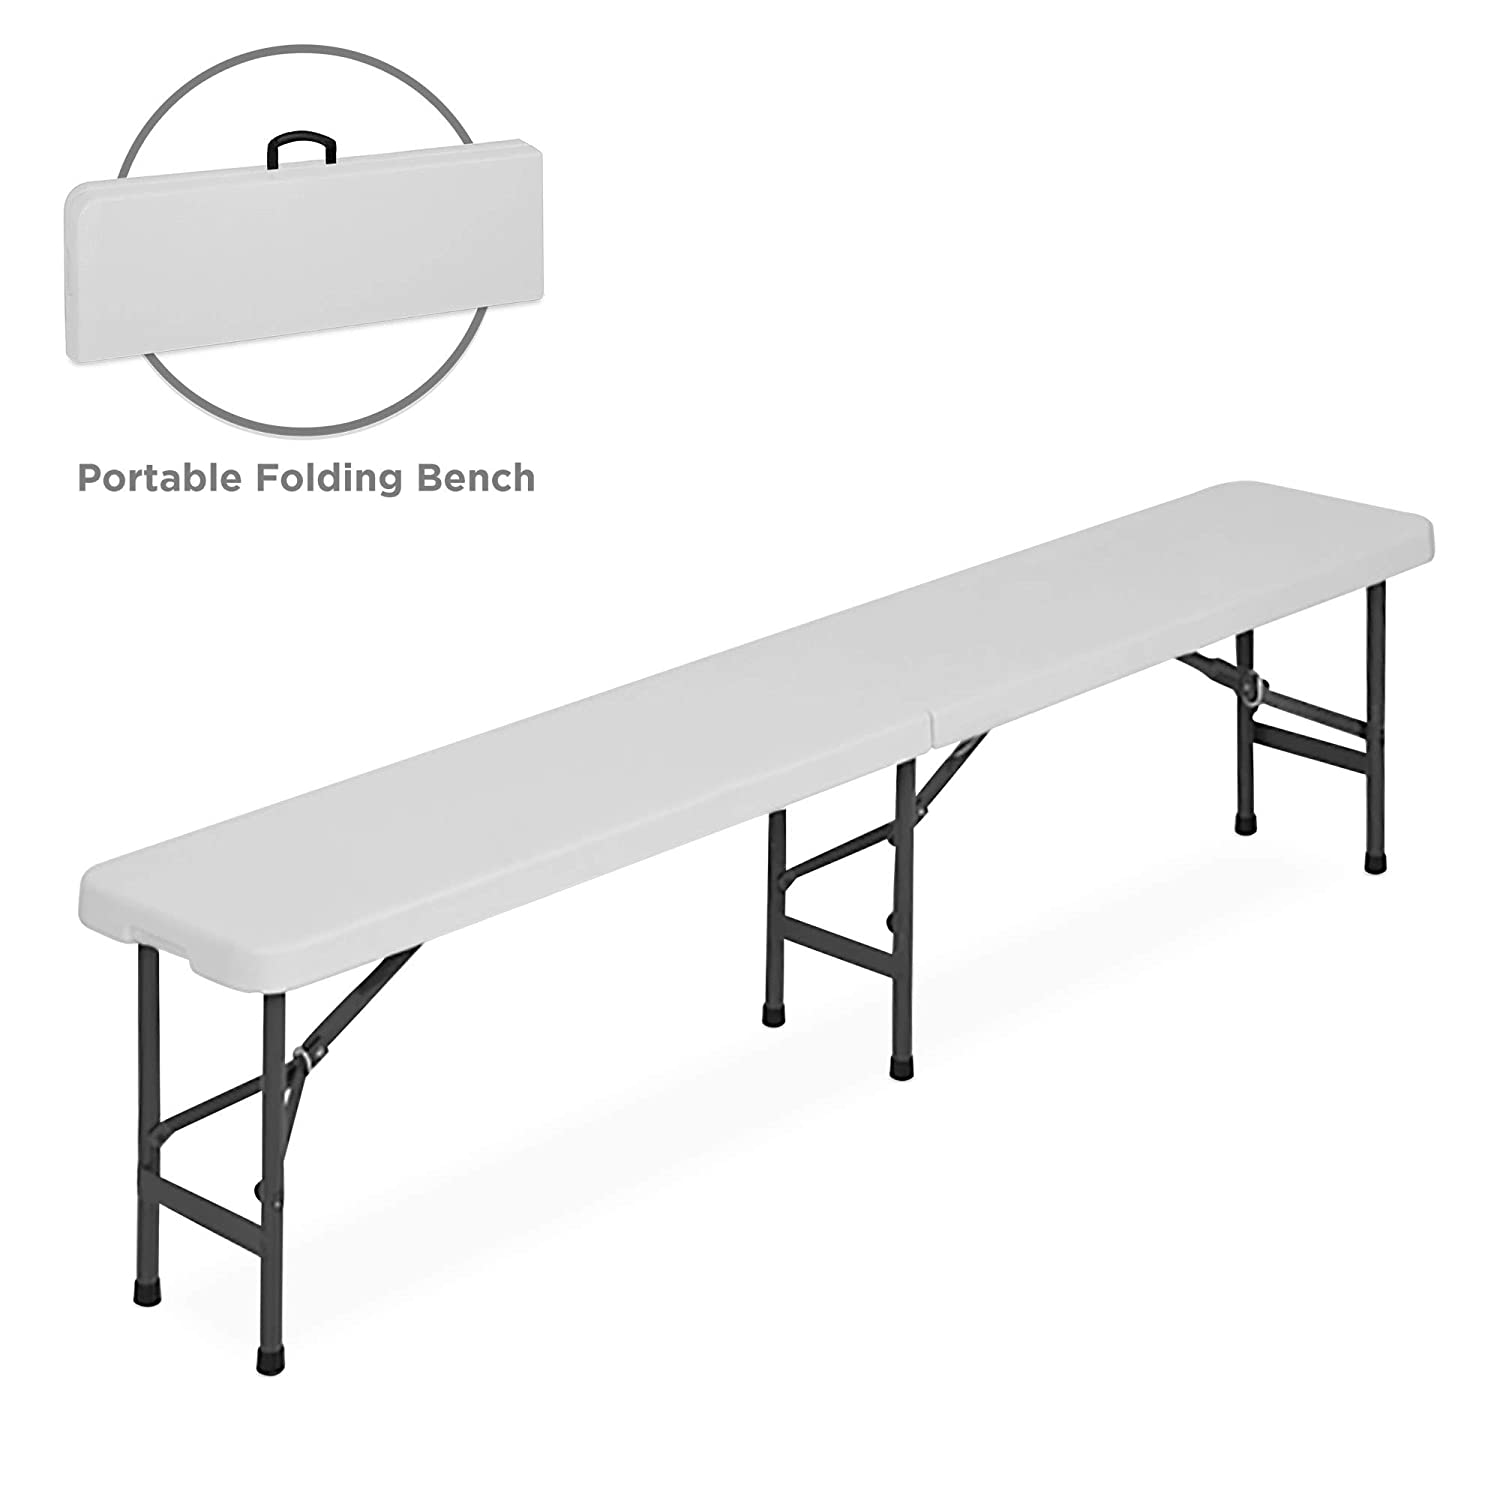 Large Storage Bench For Outdoor And Indoor Space Amazon.com: Best Choice Products 6ft Indoor Outdoor Folding Portable Plastic  Bench for Picnics, Party w- Handle and Lock - White: Garden u0026 Outdoor